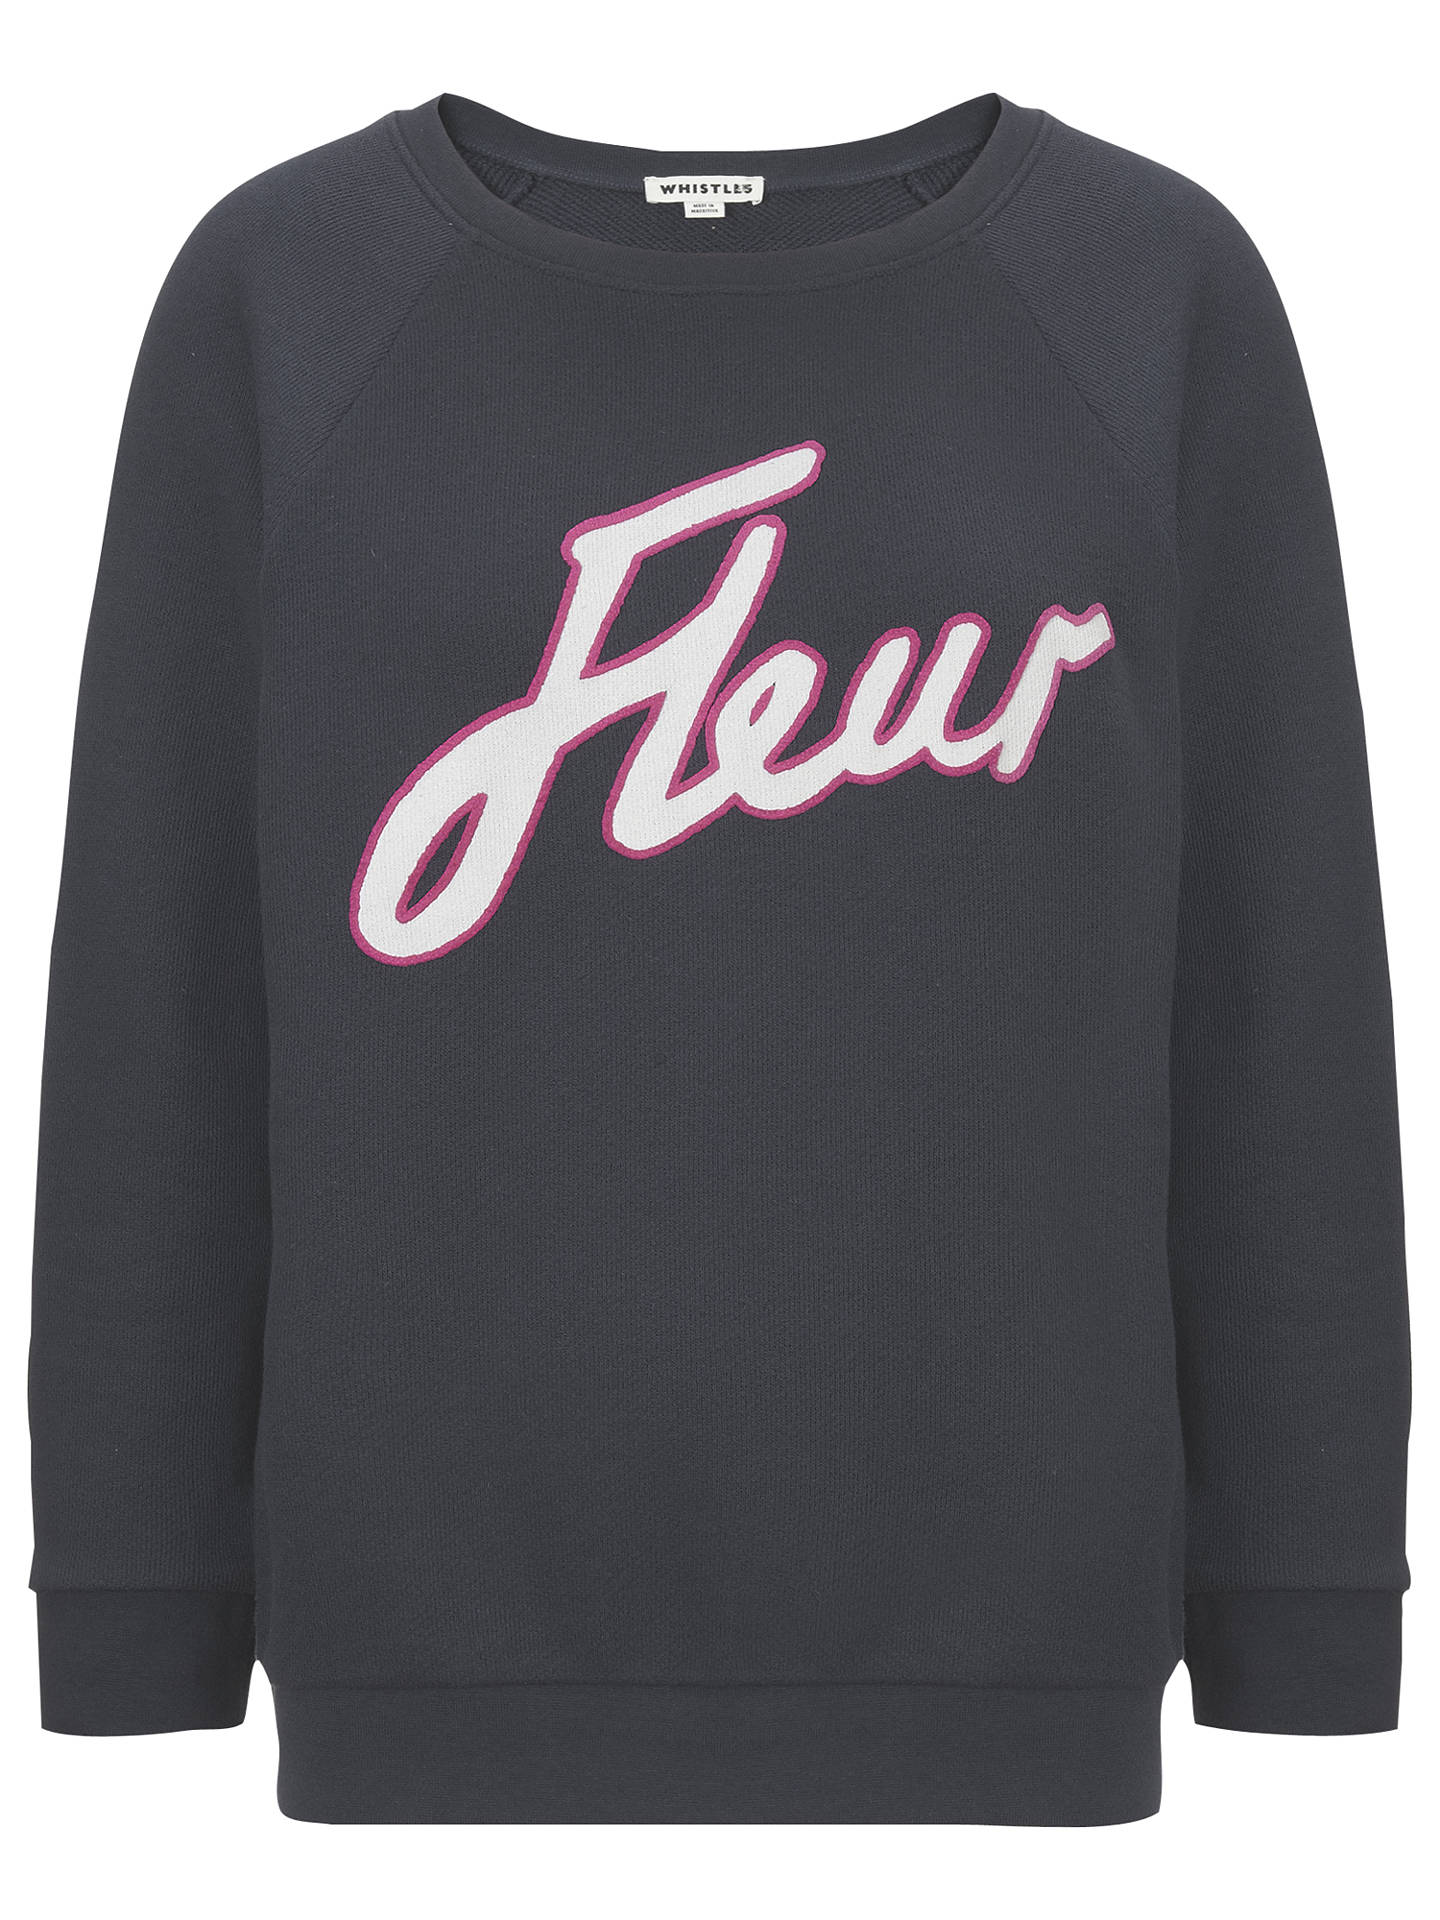 BuyWhistles Fleur Logo Sweat, Navy, M Online at johnlewis.com